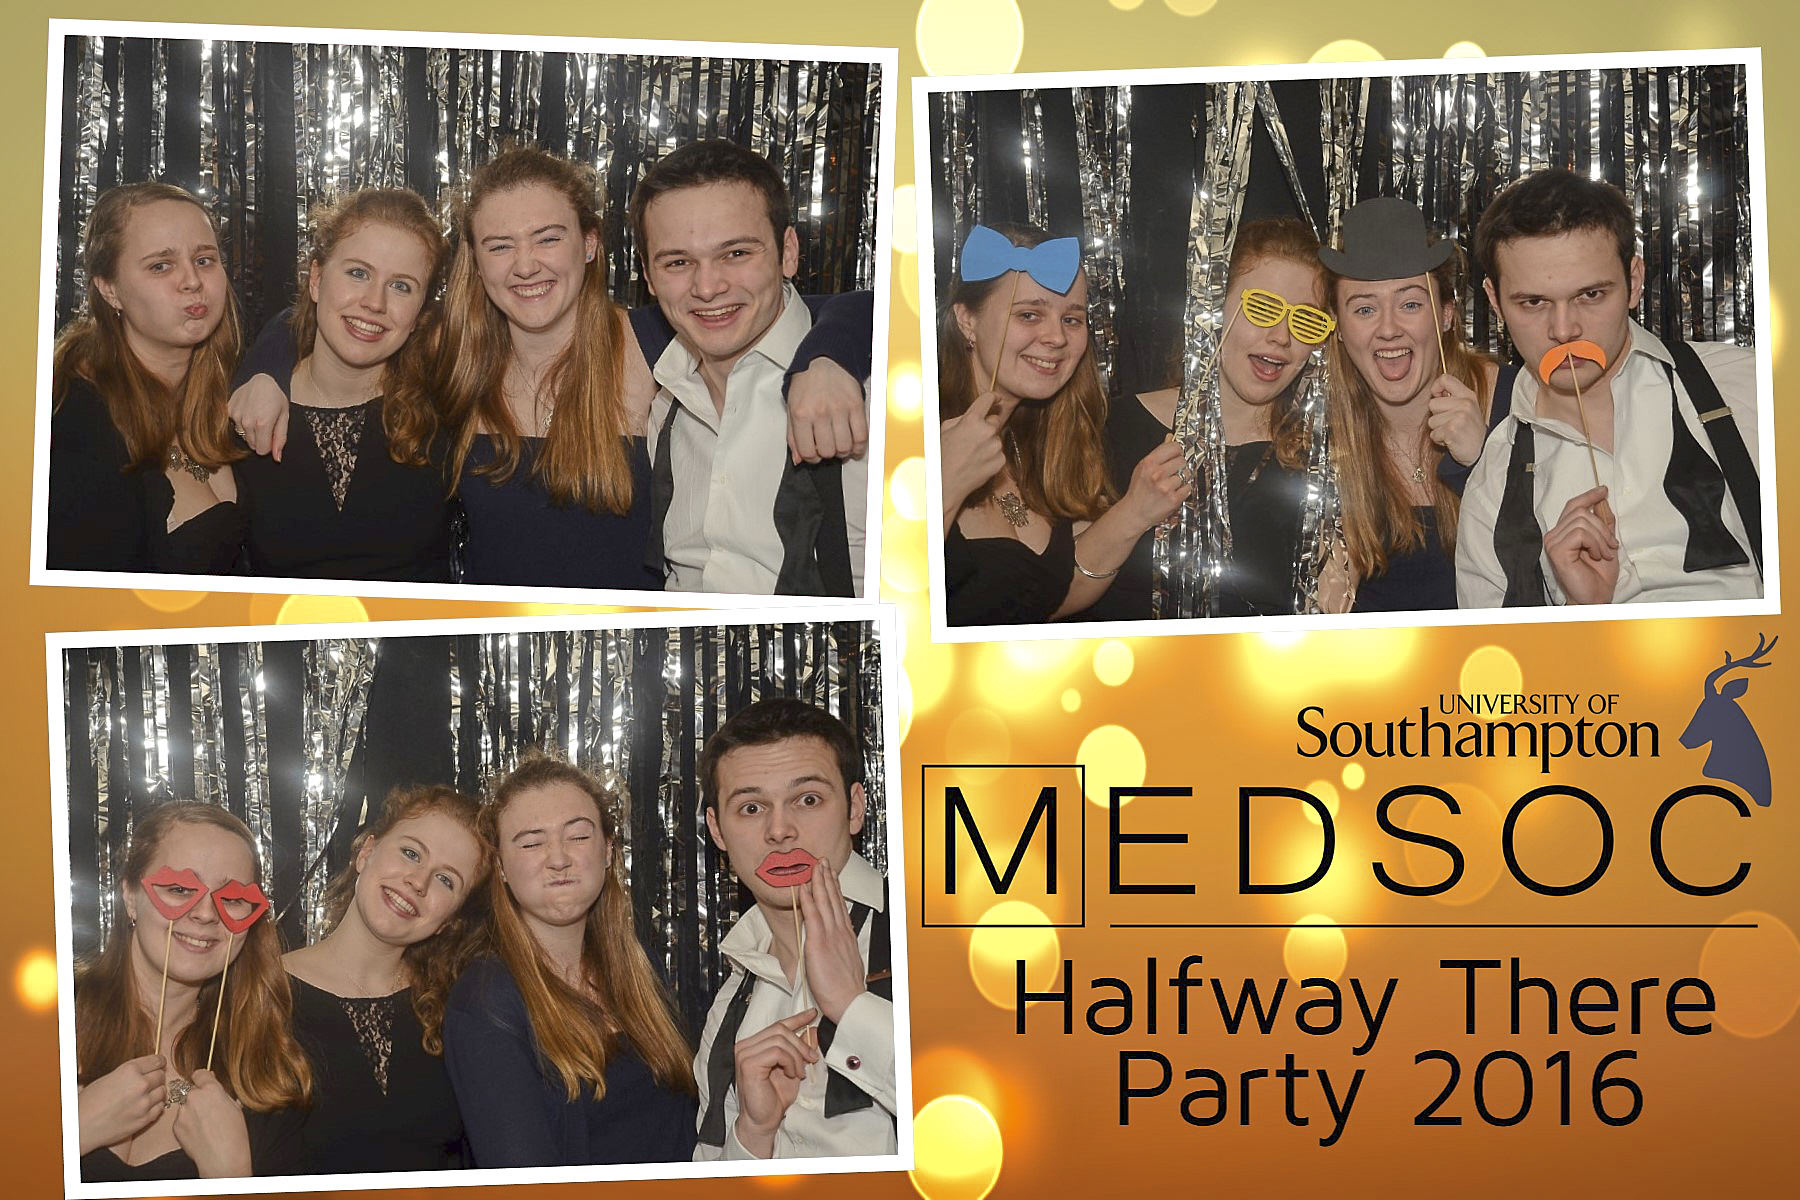 MedSoc Halfway There Party 2016 DS004355.jpg